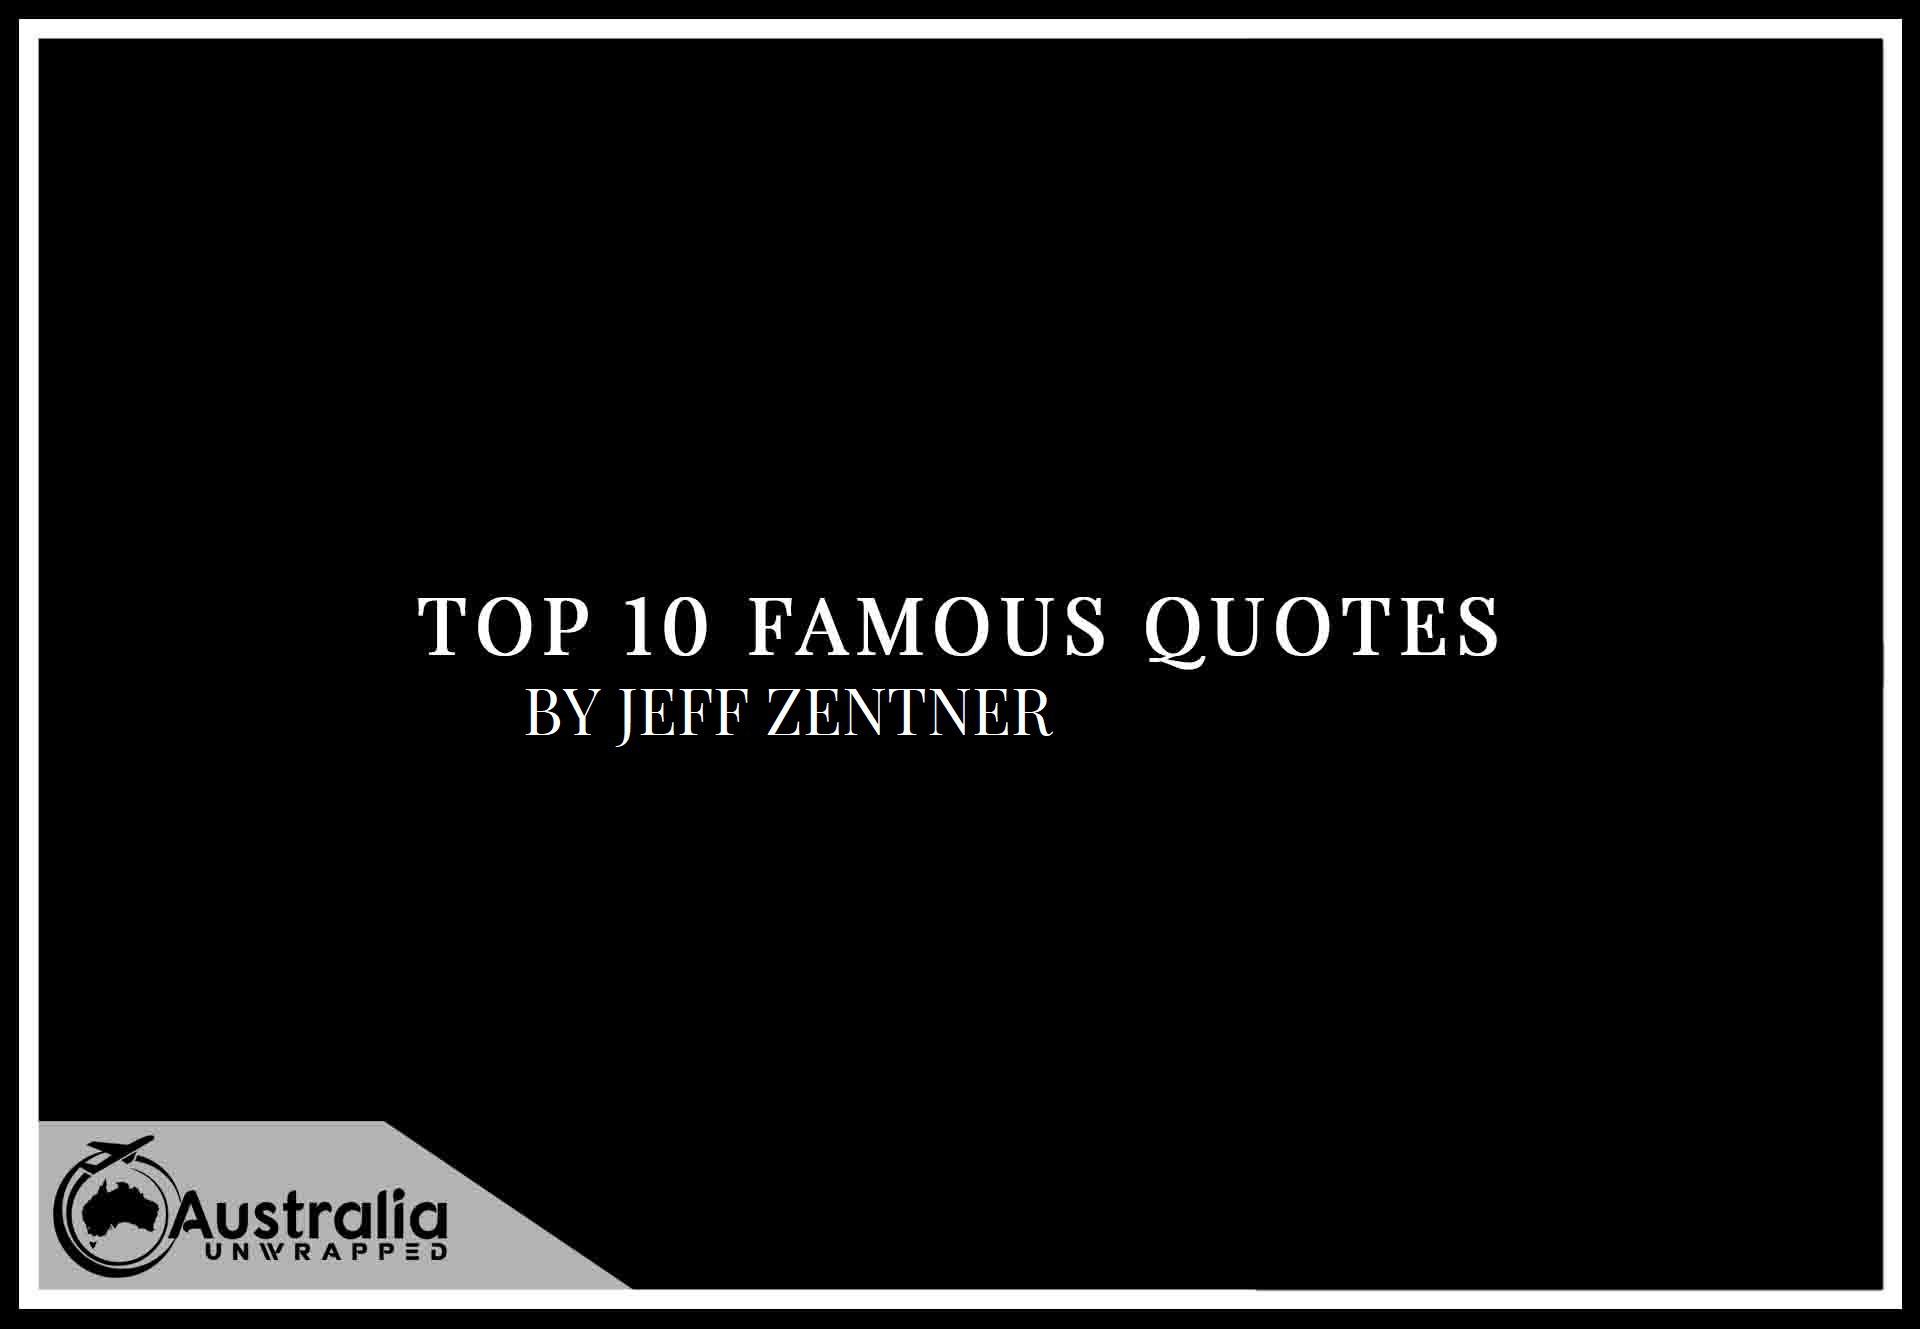 Top 10 Famous Quotes by Author Jeff Zentner